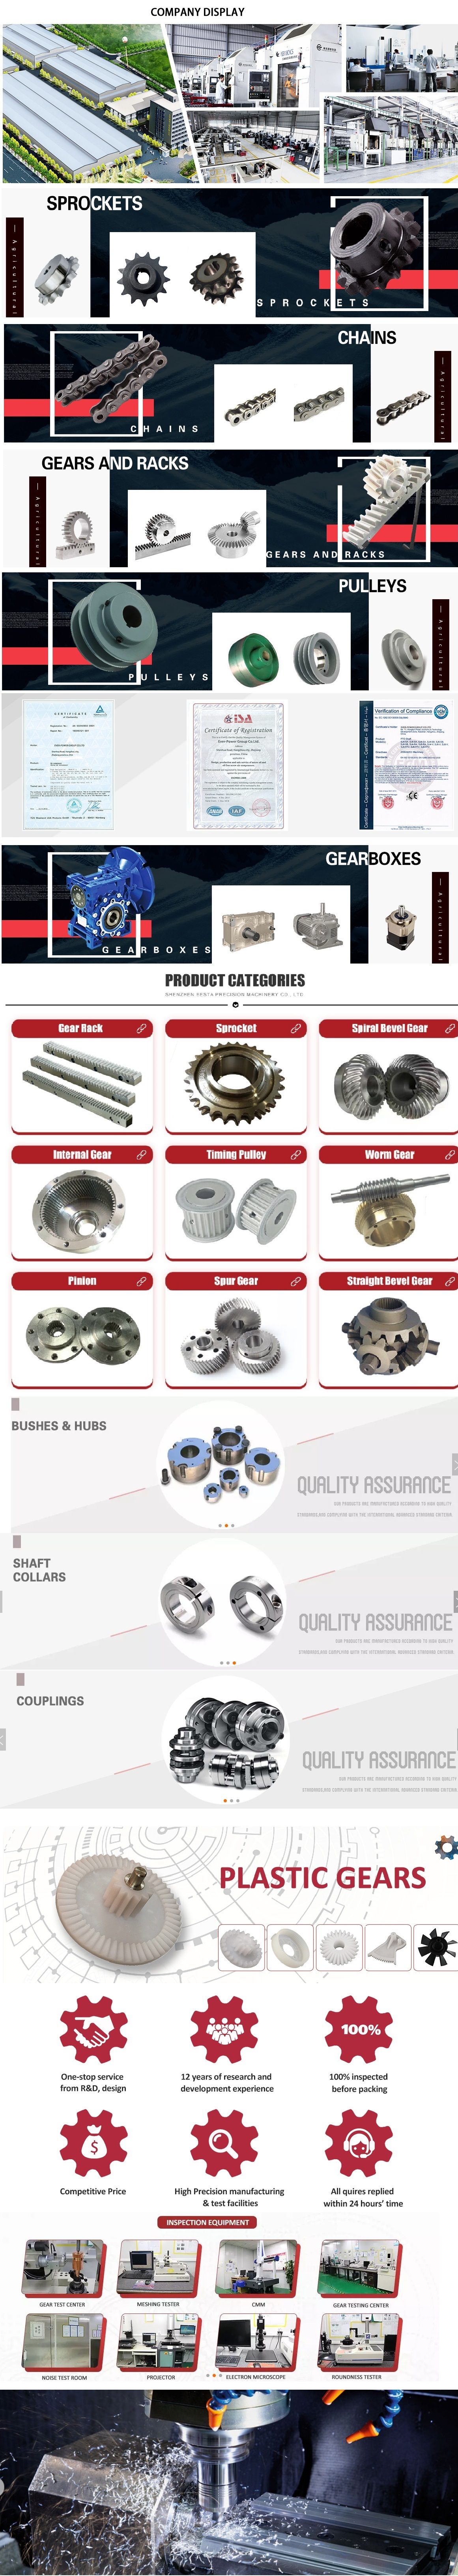 in Hufuf-Mubarraz Saudi Arabia  sales   price   shop   near me   near me shop   factory   supplier Low Price B09 Cycloidal Pin Gear Reducer Horizontal Gearbox Bwd Bld Cycloid Reducer Gearbox manufacturer   best   Cost   Custom   Cheap   wholesaler